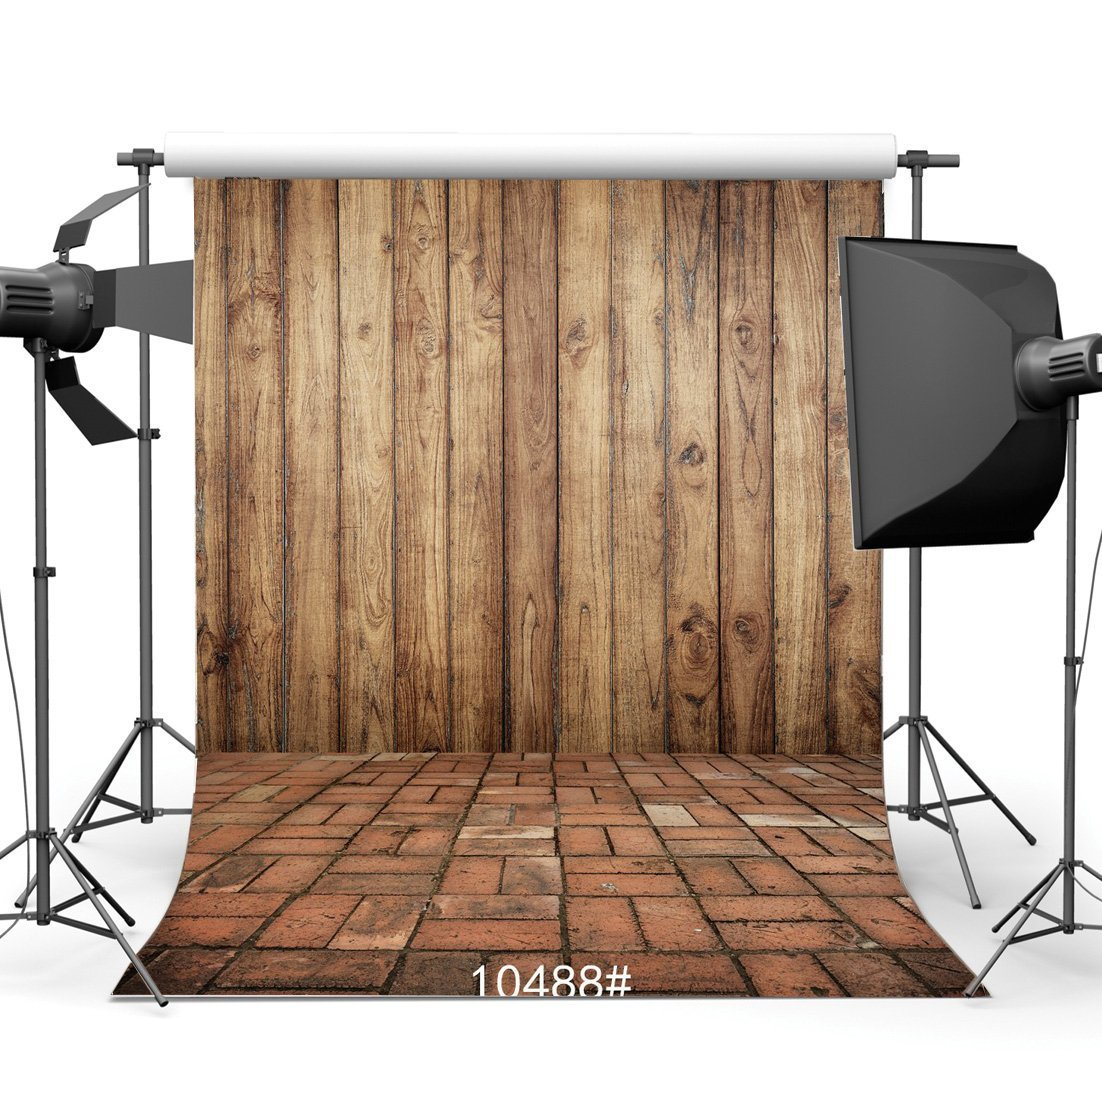 Photography Backdrops Rustic Vintage Wooden Wall & Nostalgia Painted Brick Floor Portraits Background-in Photo Studio Accessories from Consumer Electronics